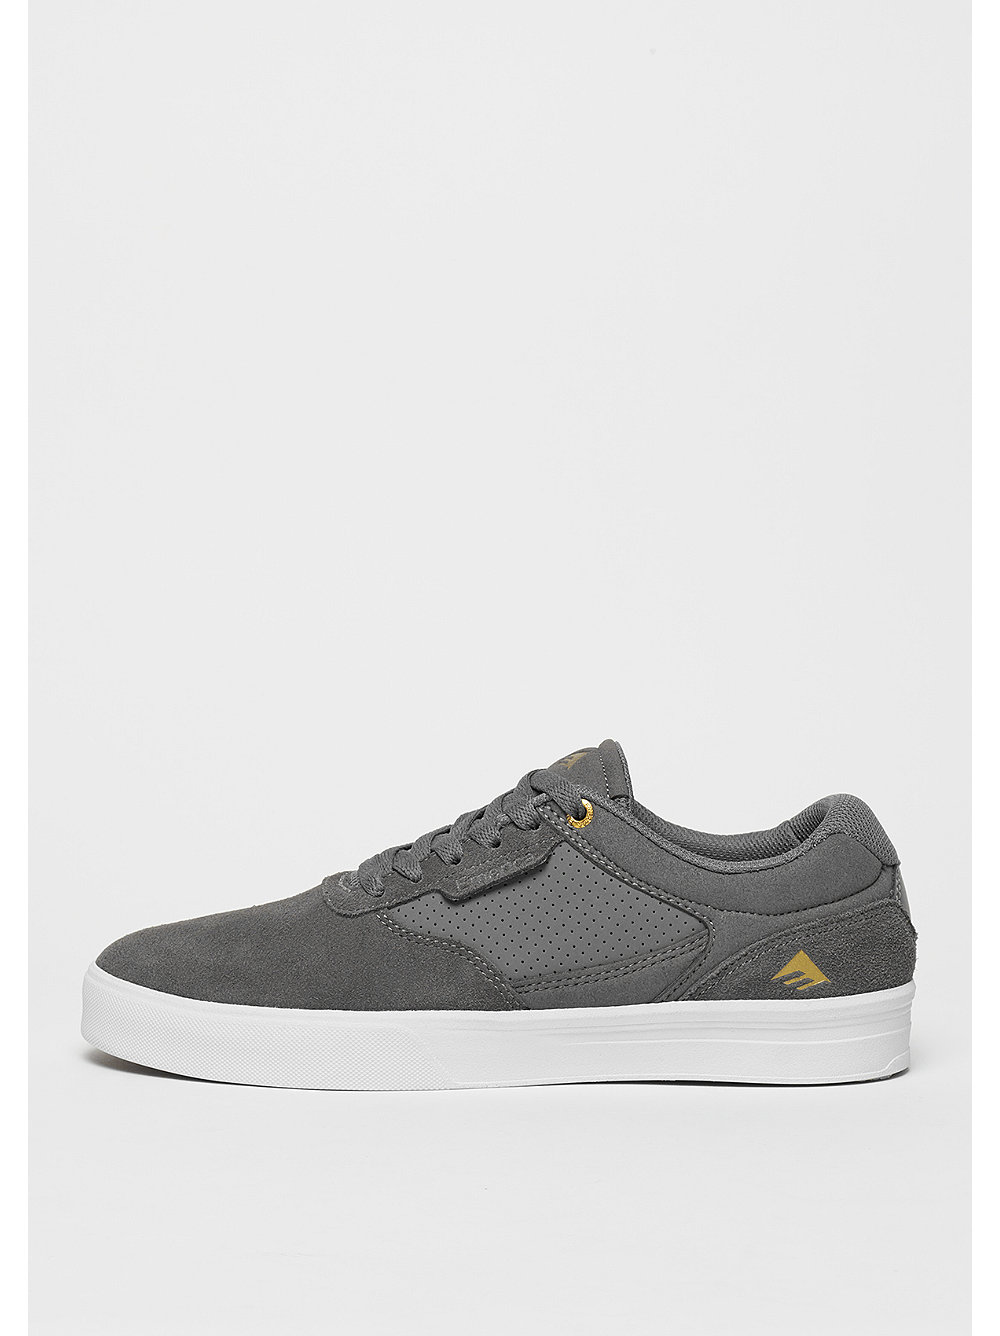 Emerica Empire G6 grey/white